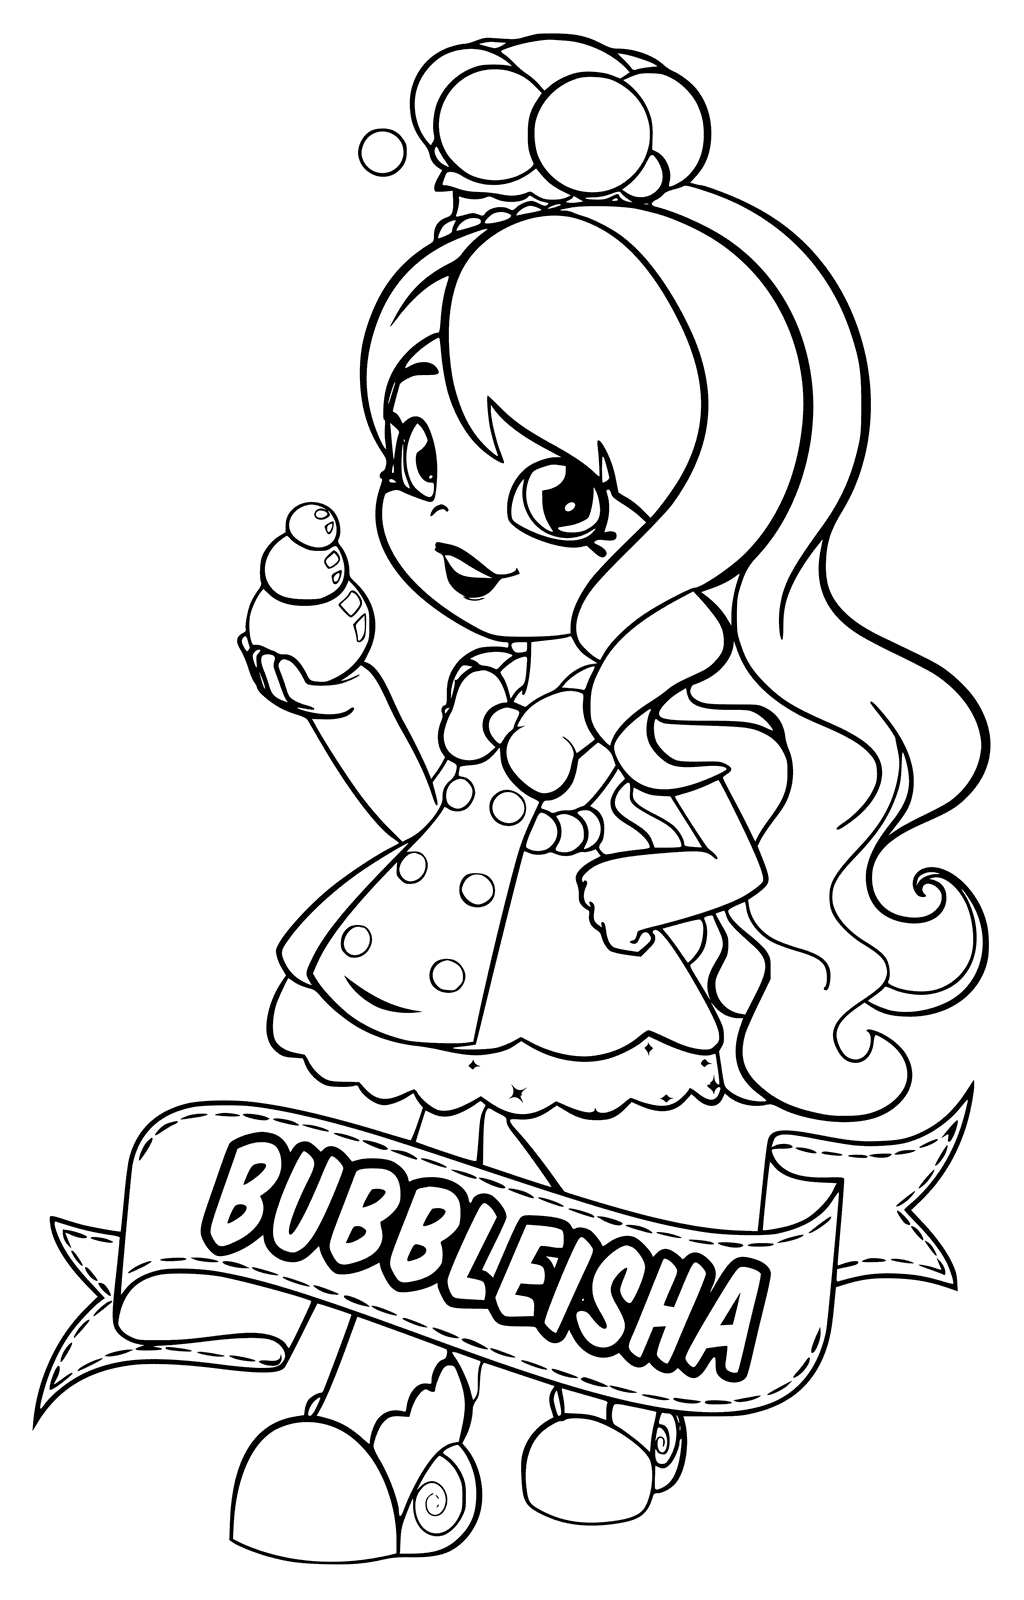 Bubbleisha -Shoppies Coloring Pages